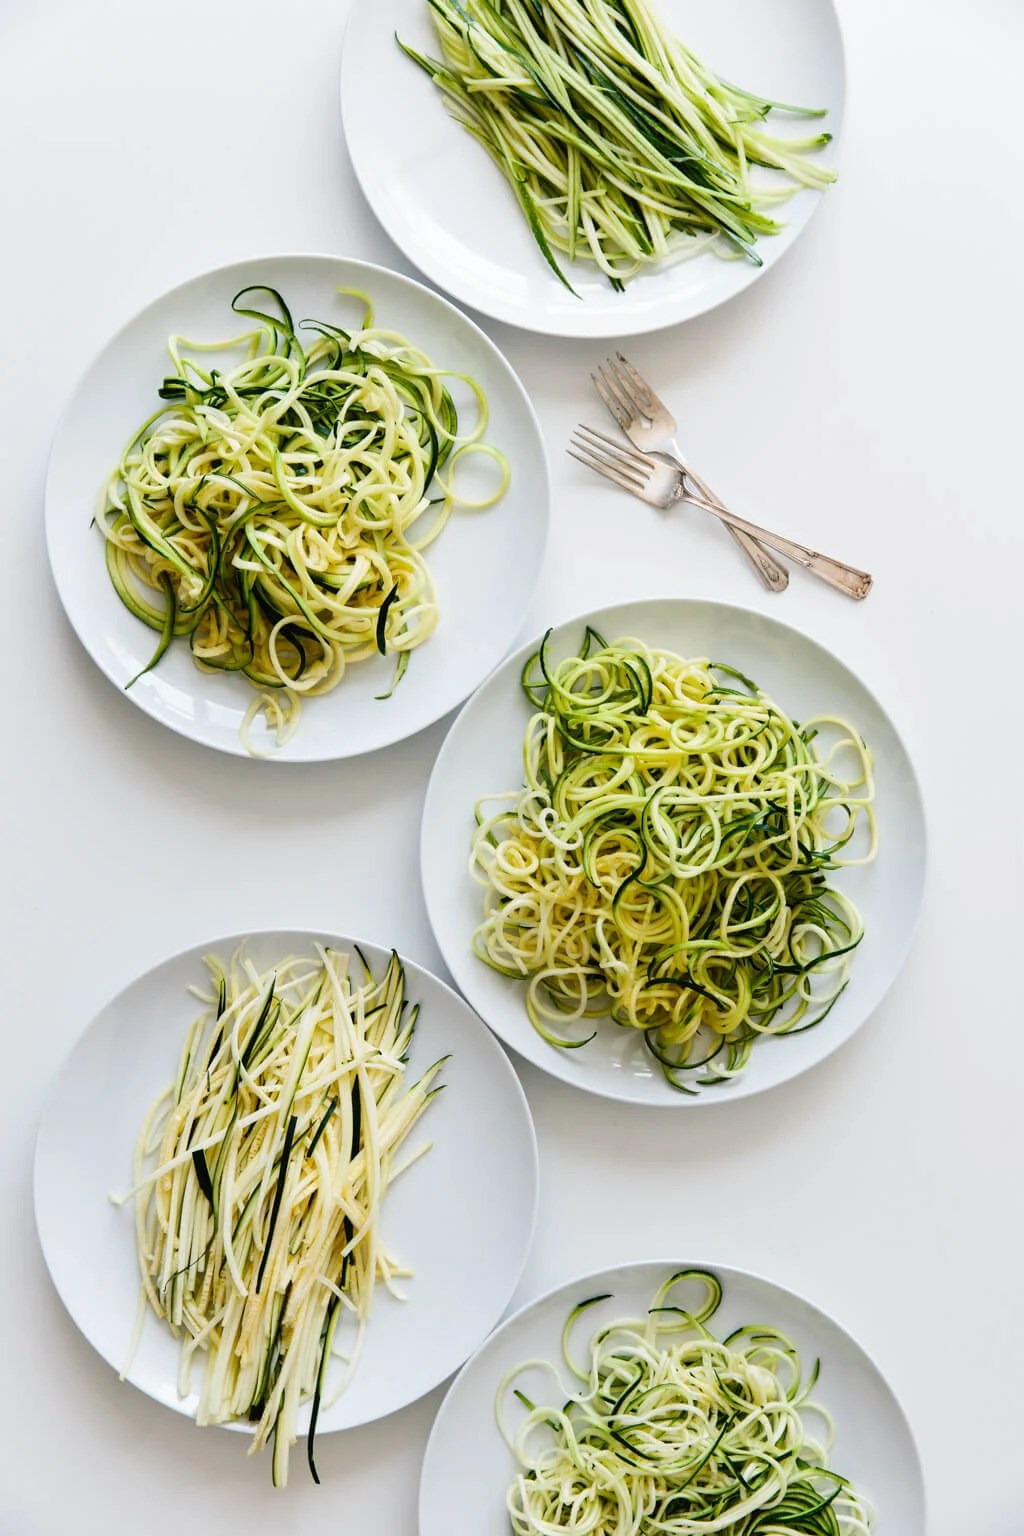 Five plates of zucchini noodles made by different methods.